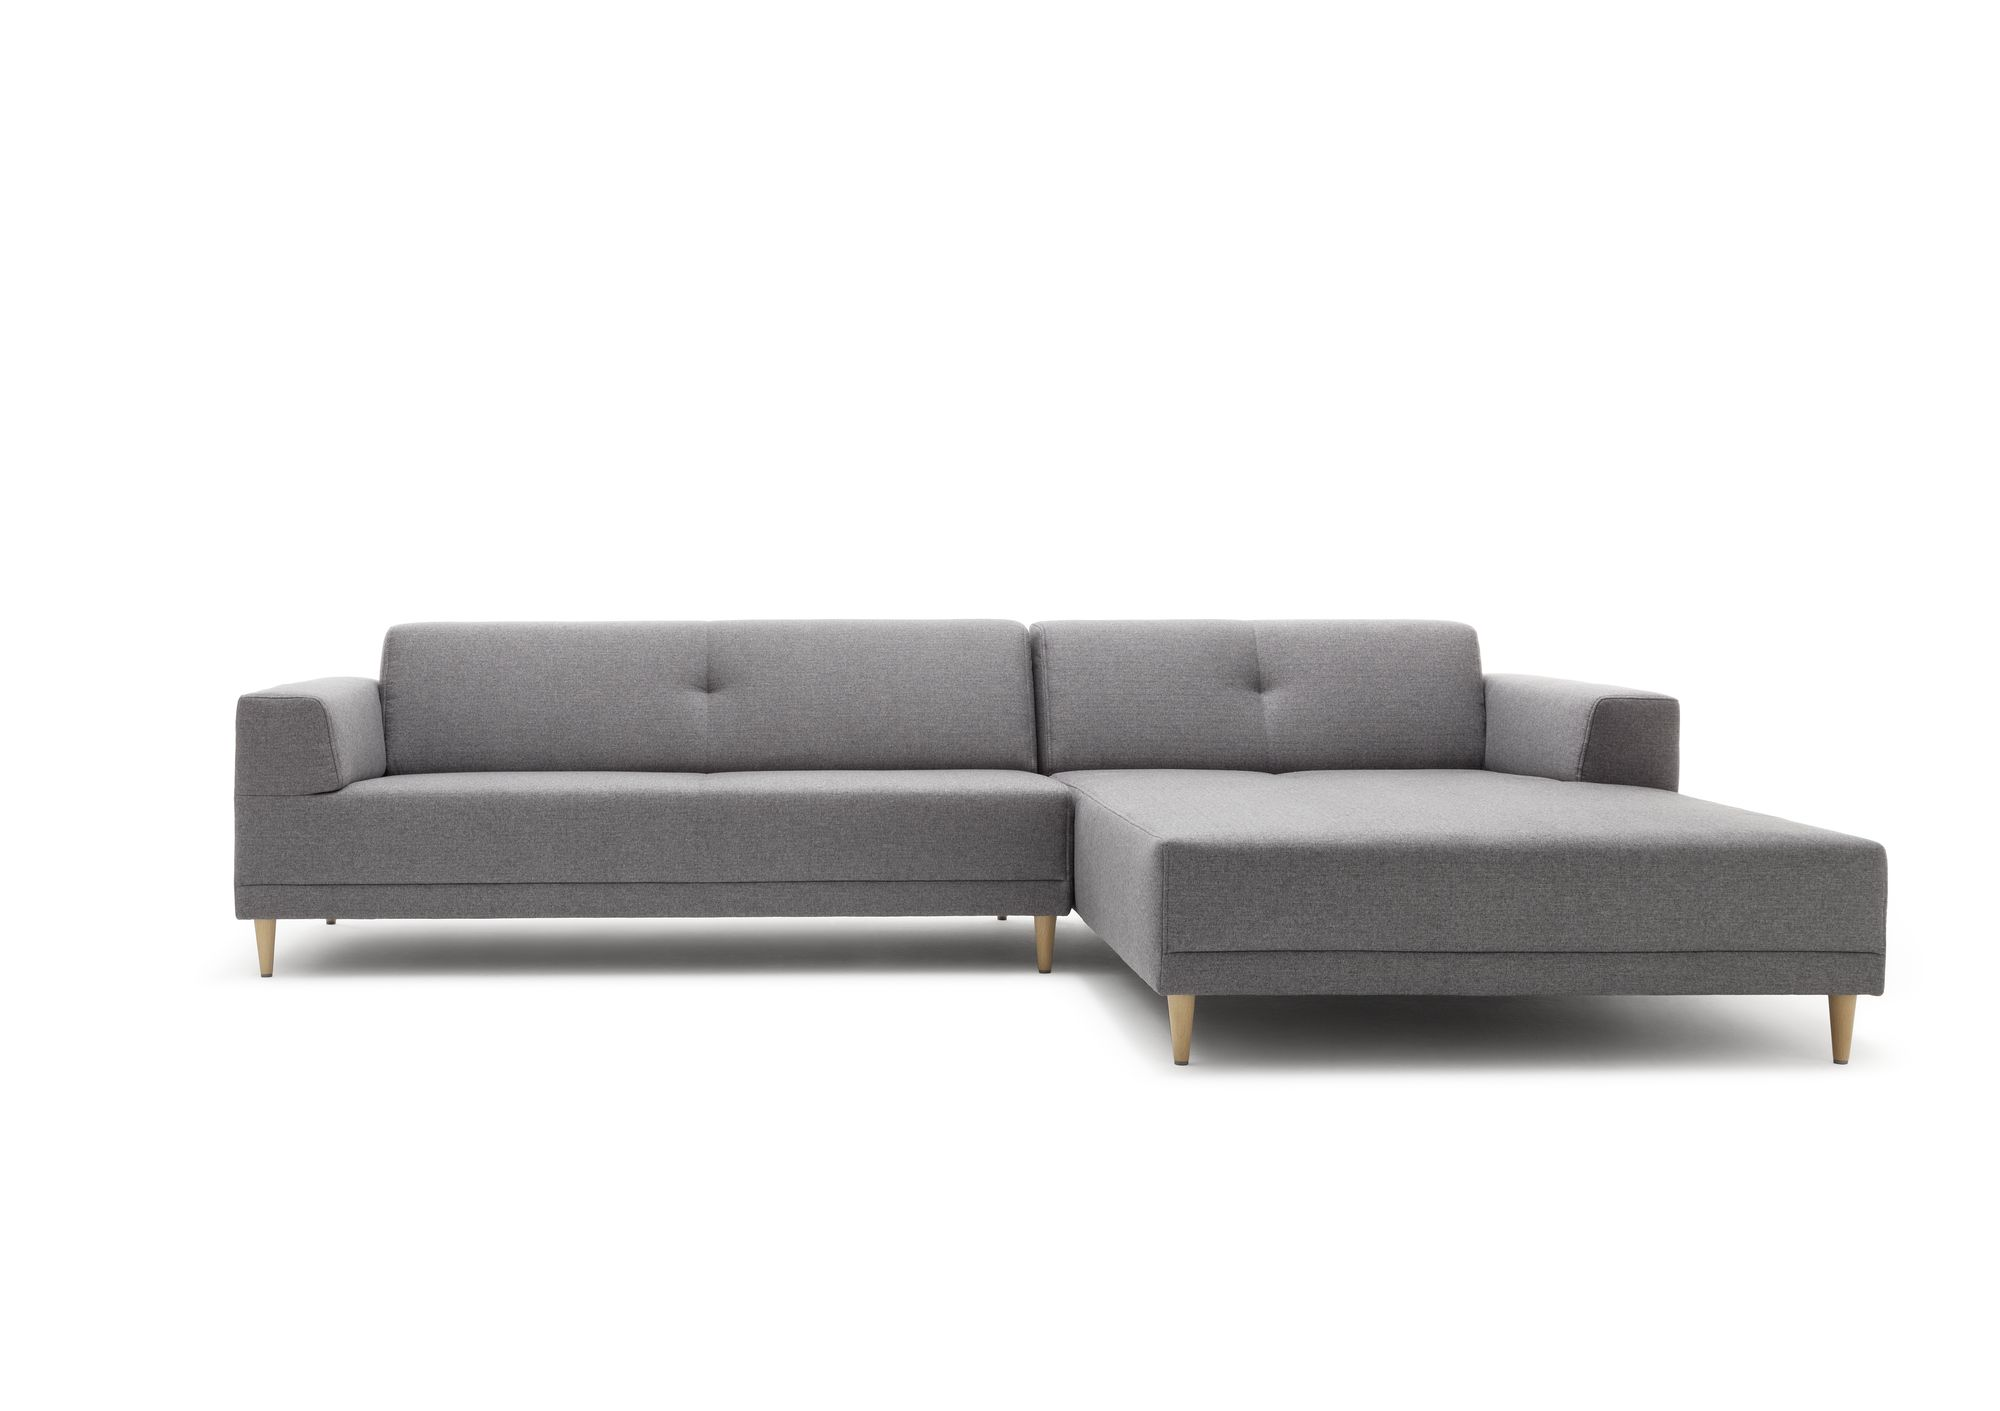 Freistil 189 Rolf Benz Sofa Mit Recamiere In Stoff